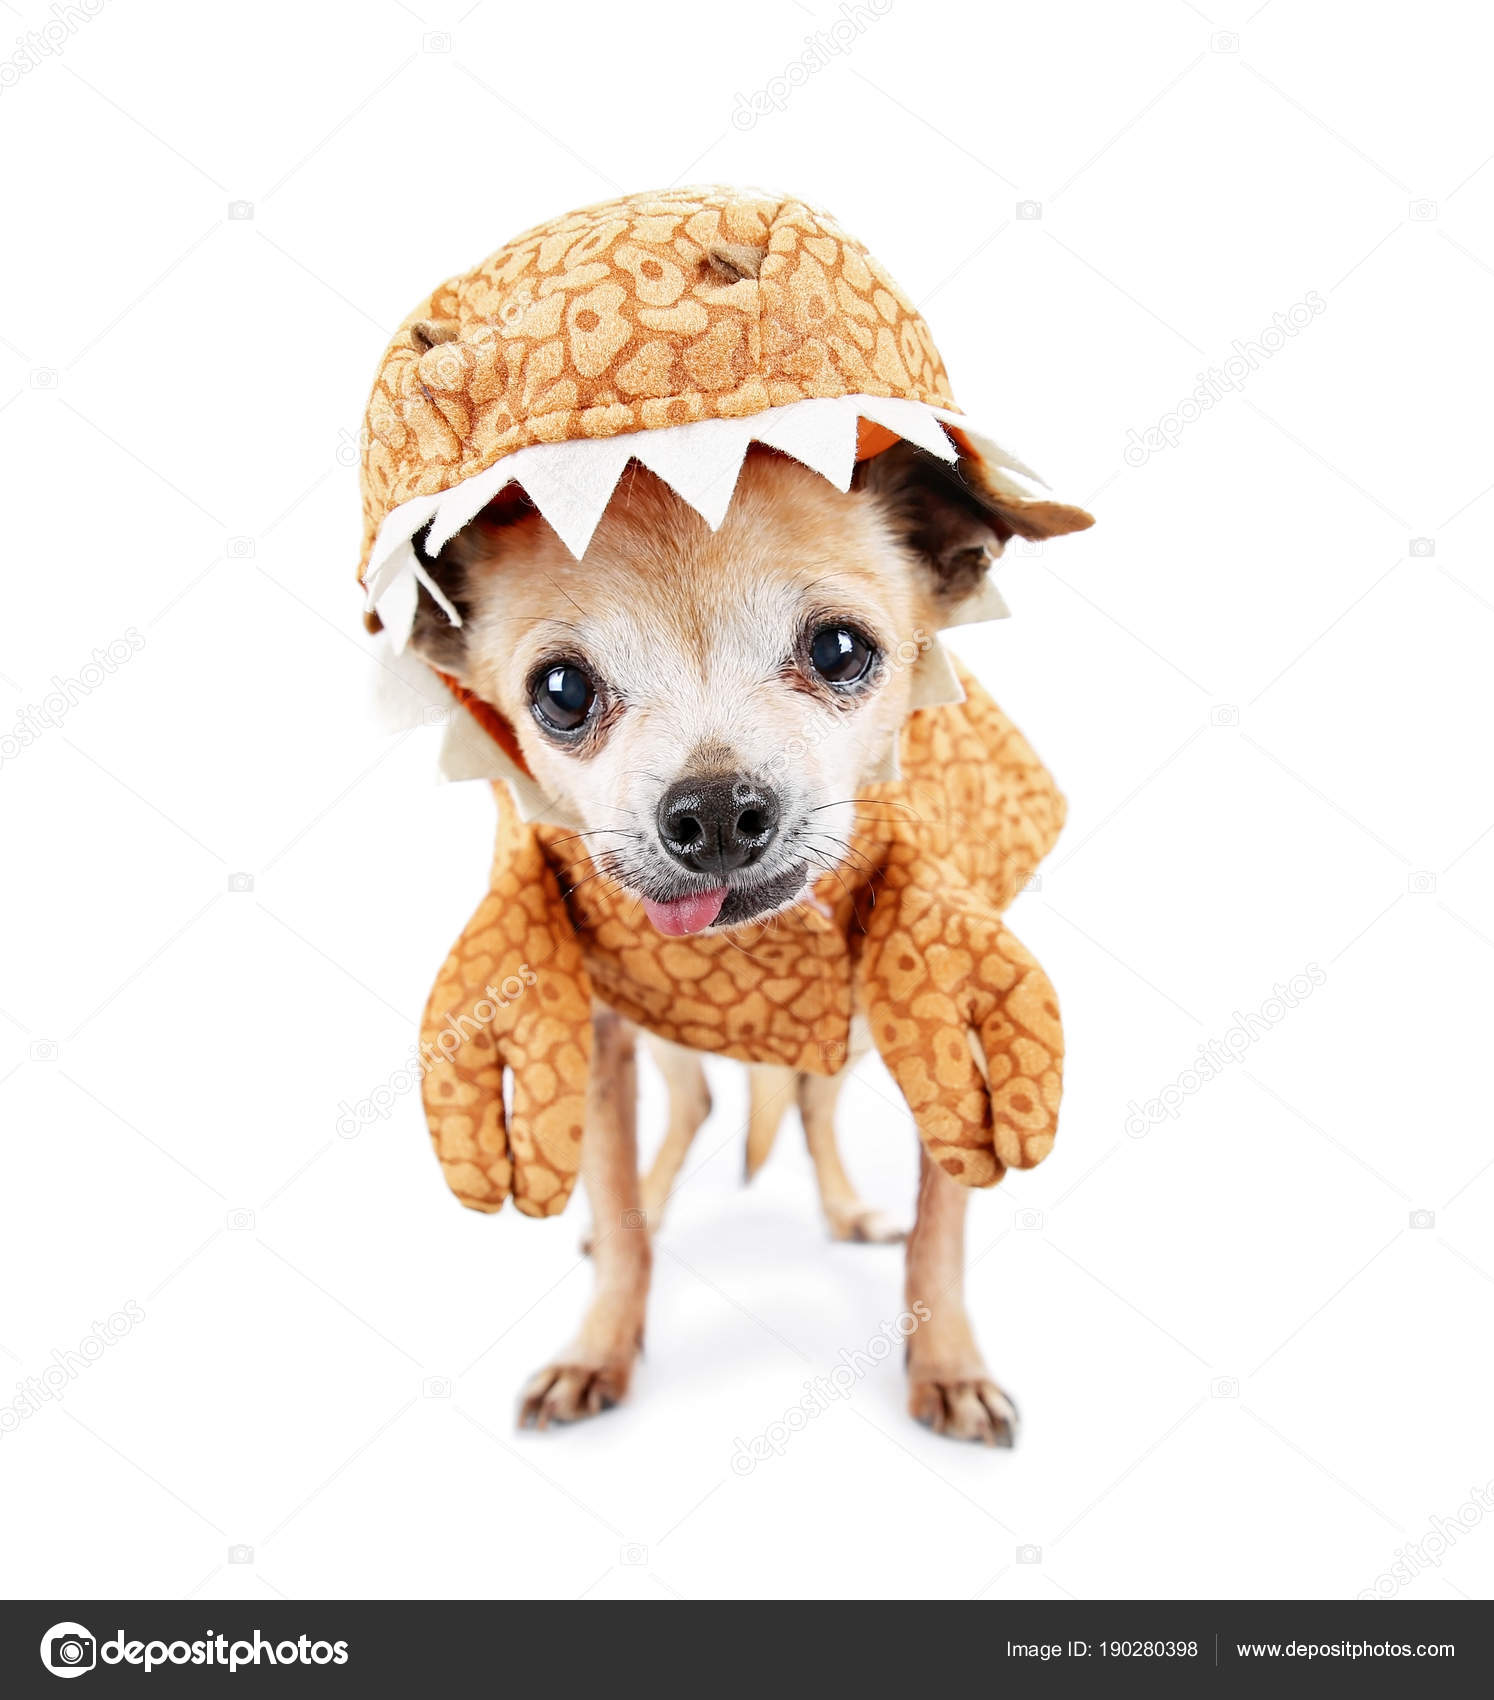 Cute chihuahua dressed in a dinosaur costume isolated on a white background u2014 Photo by graphicphoto  sc 1 st  Depositphotos & cute chihuahua dressed in a dinosaur costume isolated on a white ...